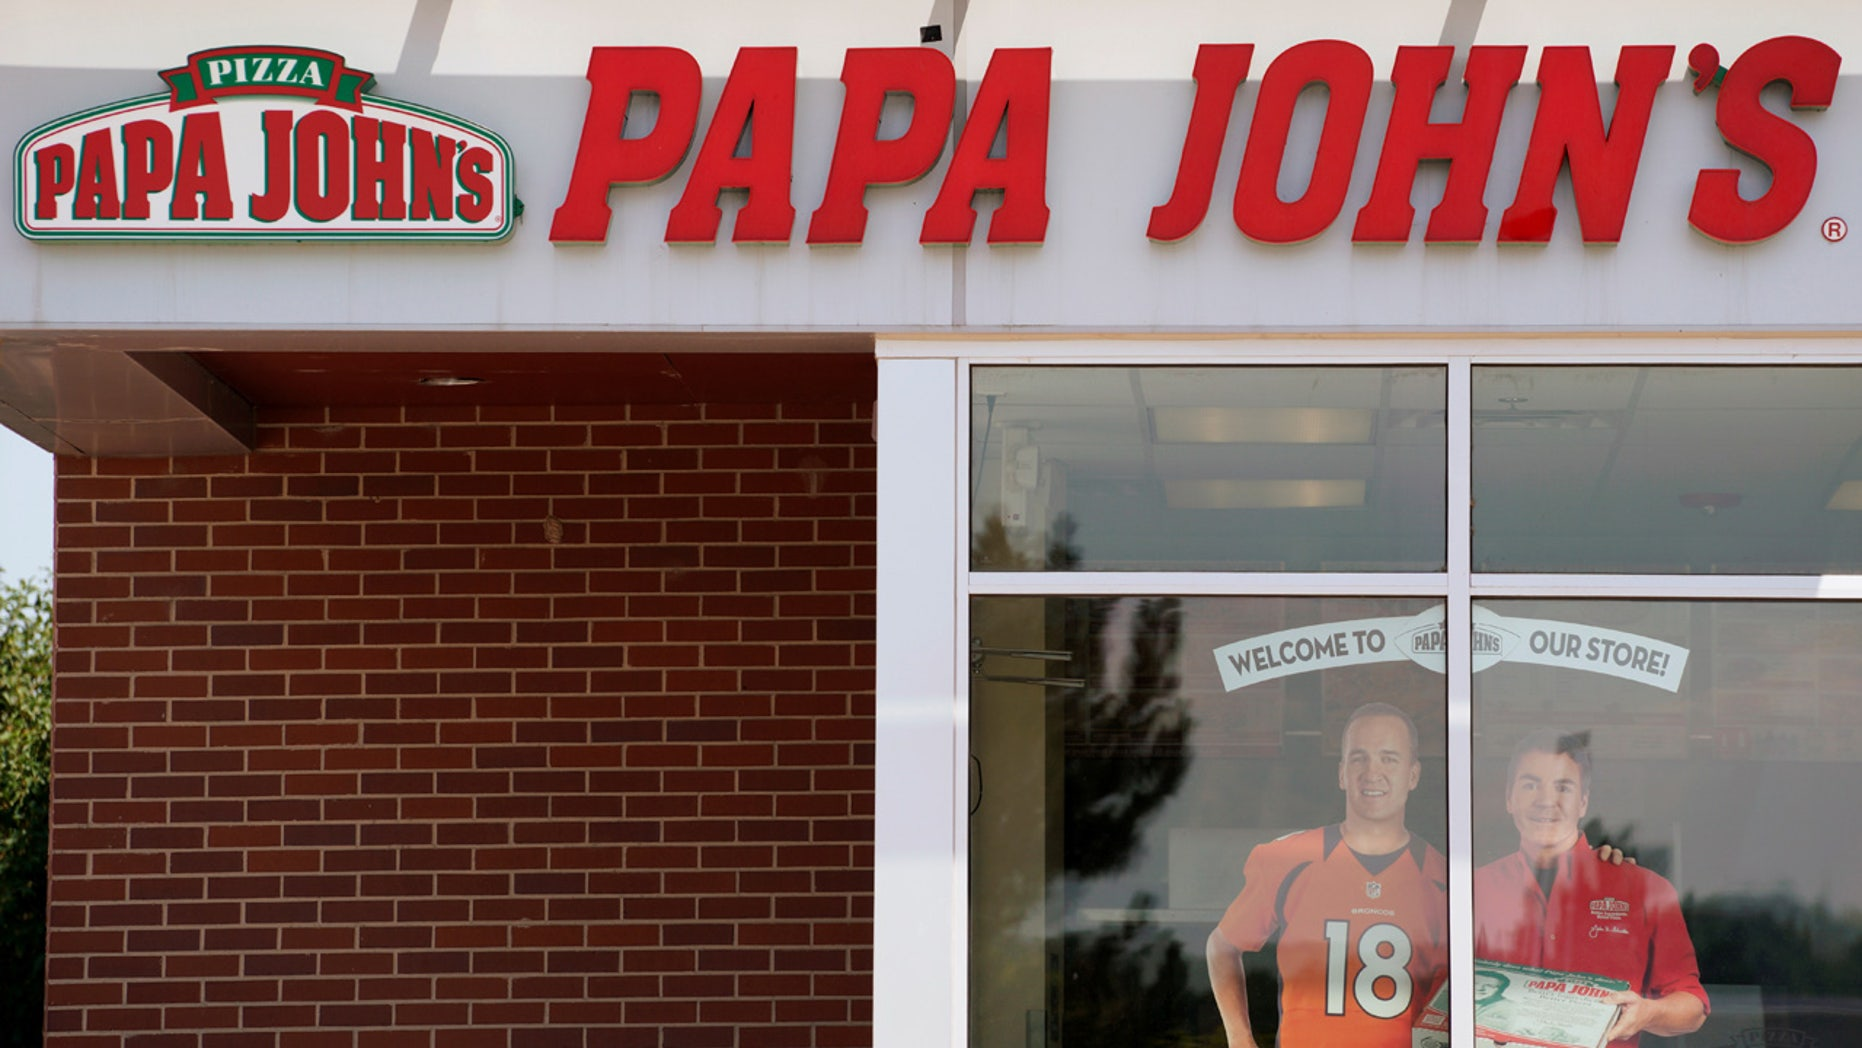 A Papa John's store in Westminster, Colorado.